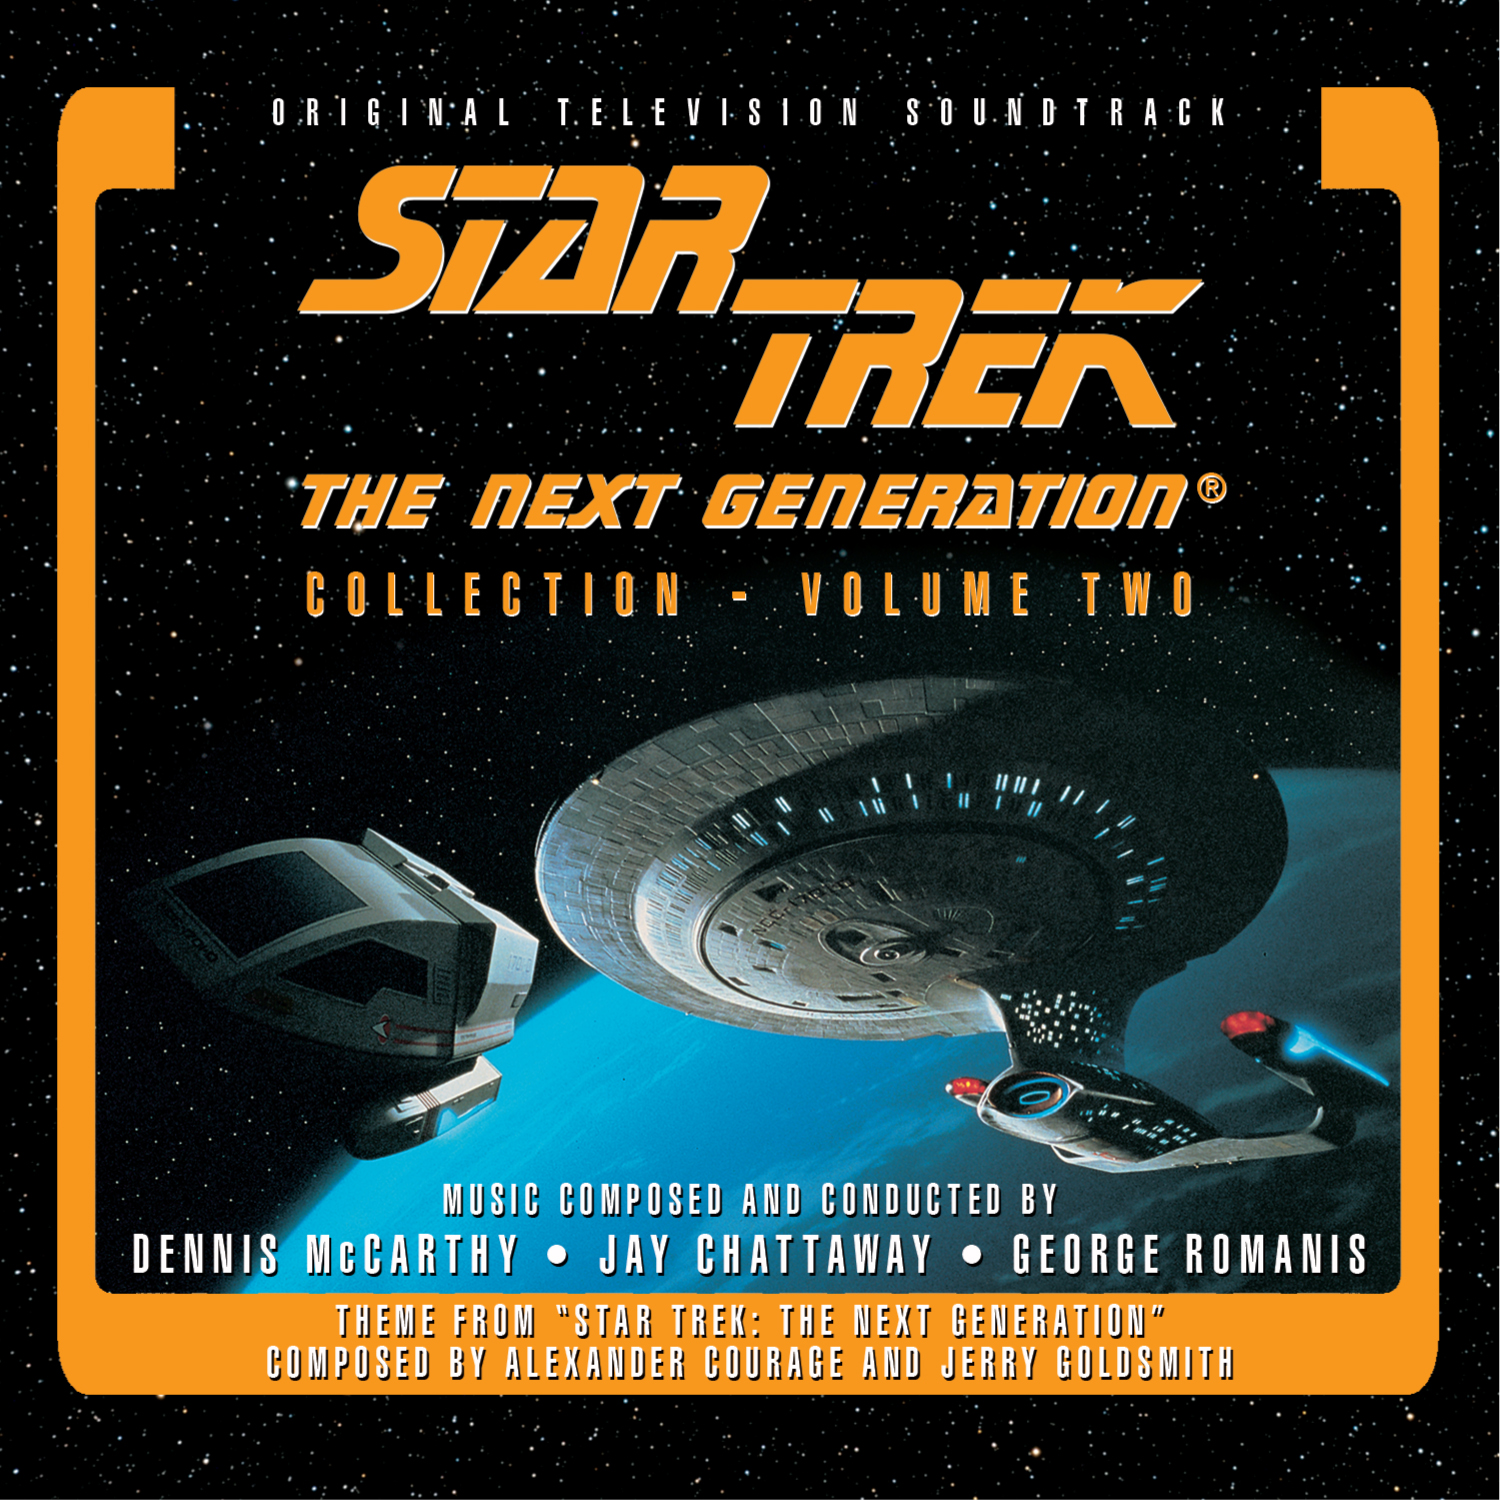 Star Trek: The Next Generation Collection – Volume Two